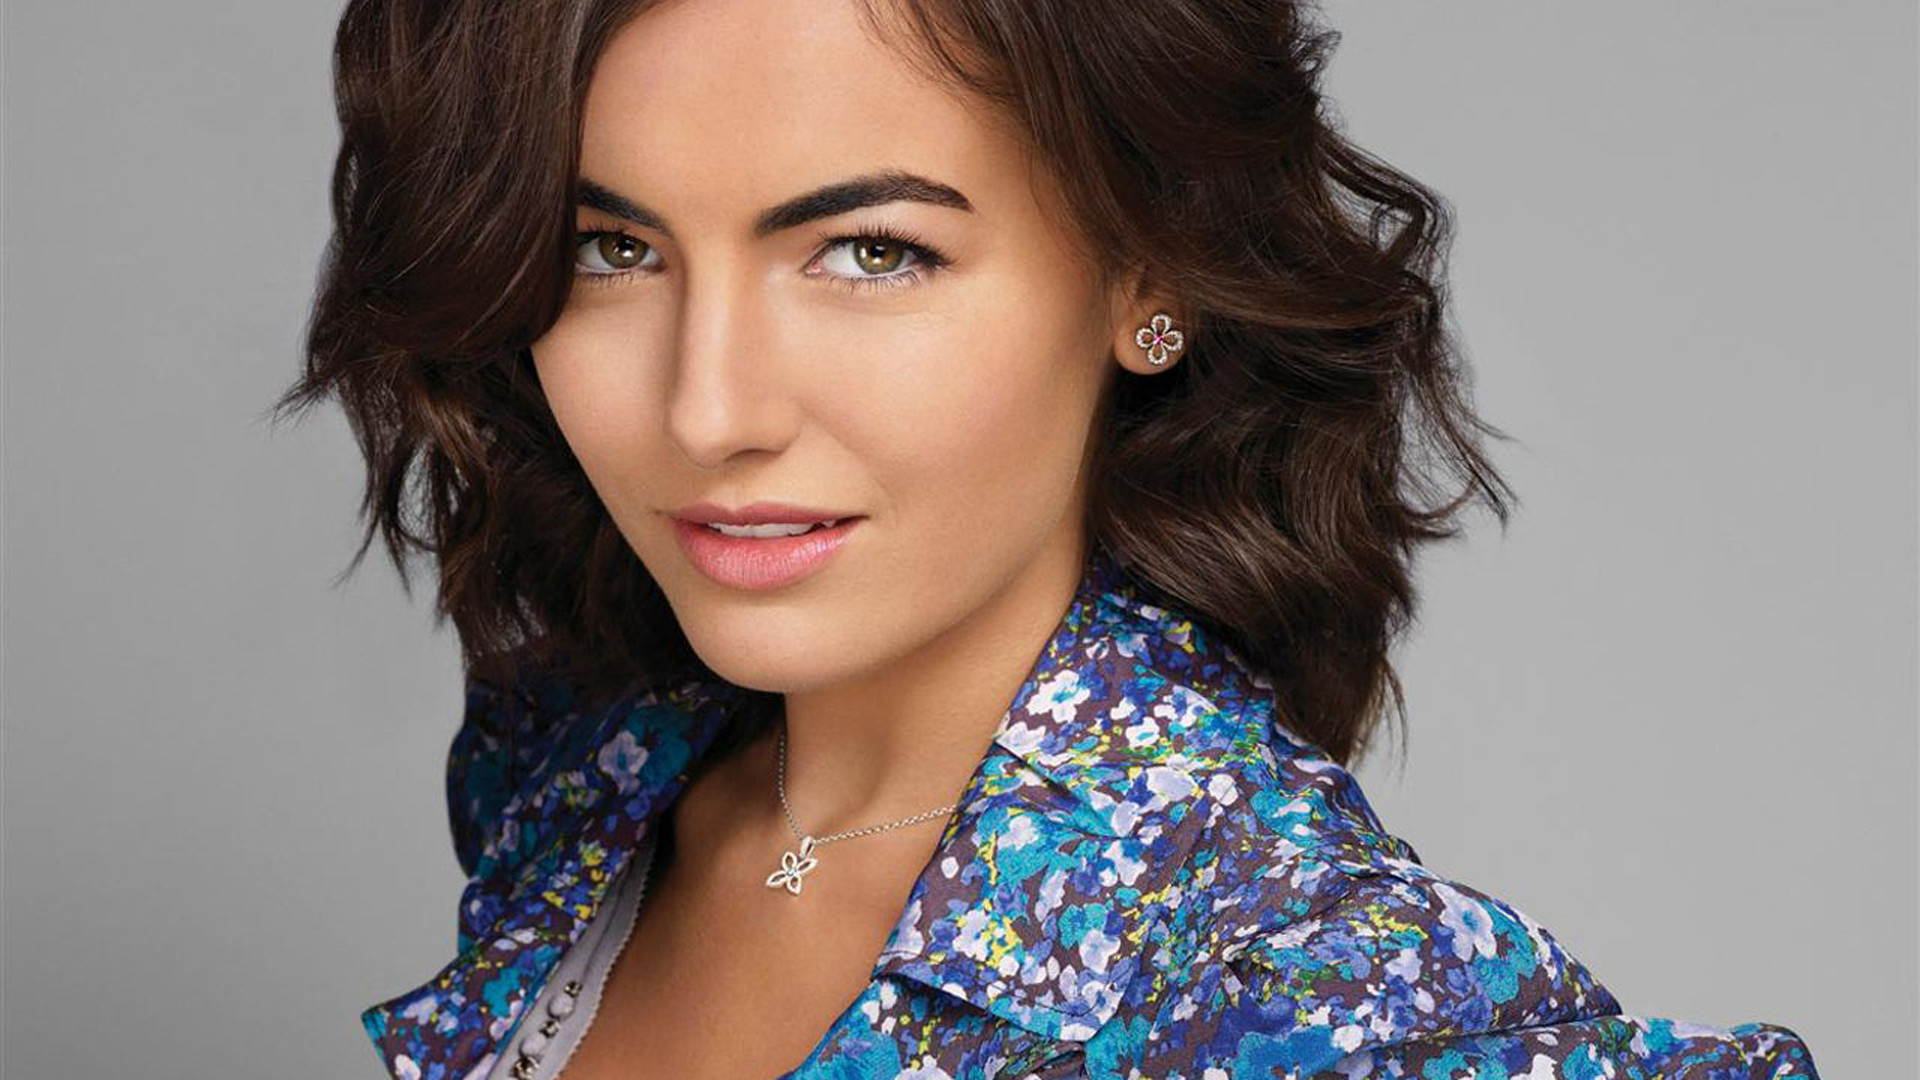 Res: 1920x1080, Camilla Belle Wallpapers - HD 03 Camilla Belle Wallpapers - HD 04